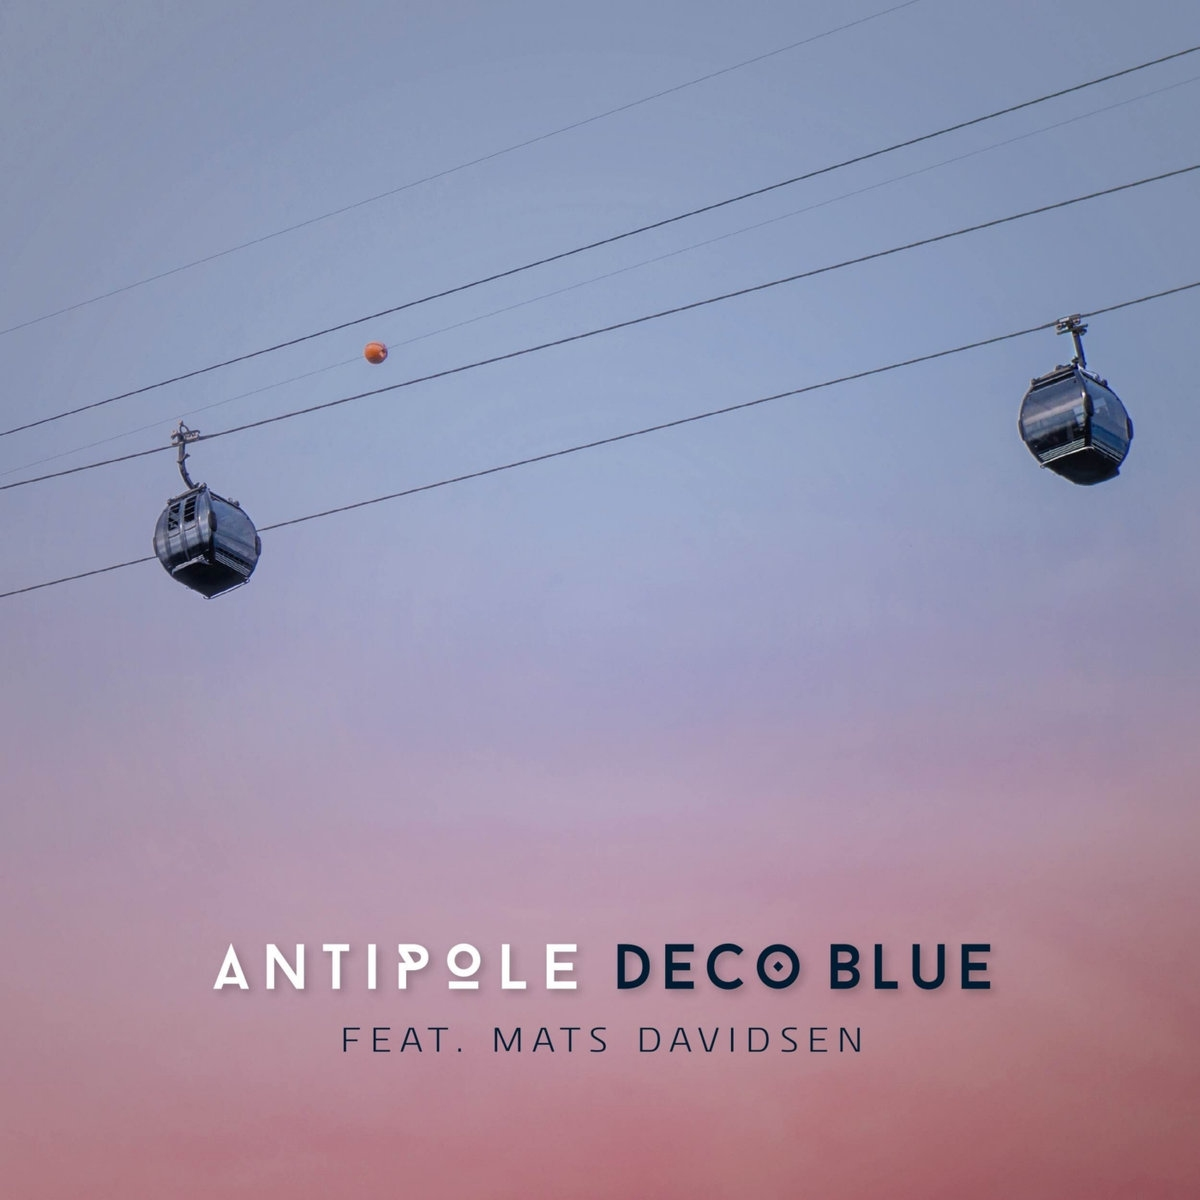 Antipole, Deco Blue